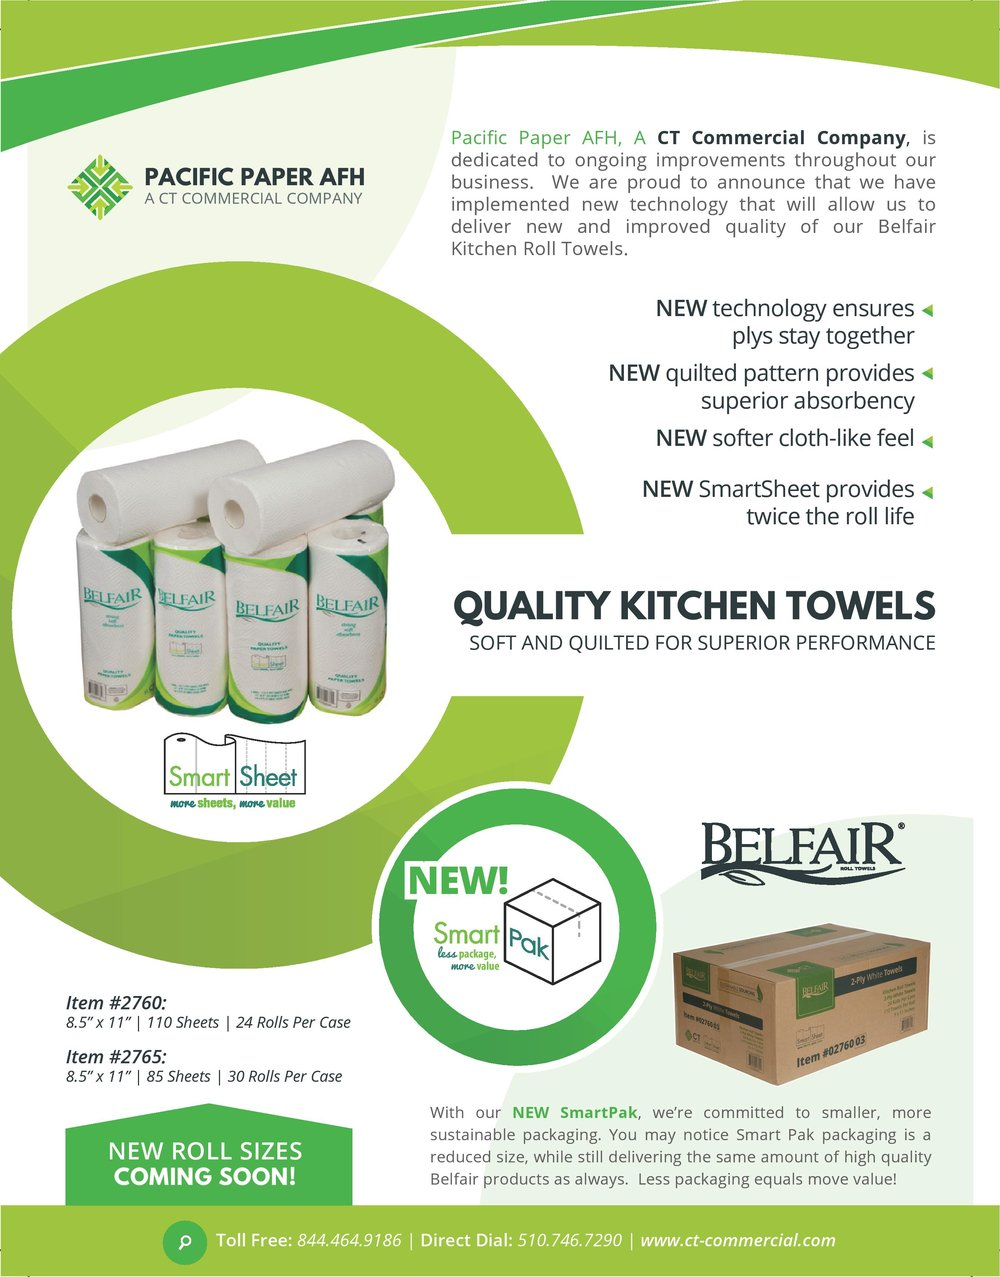 Kitchen Roll Brochure Image.jpg